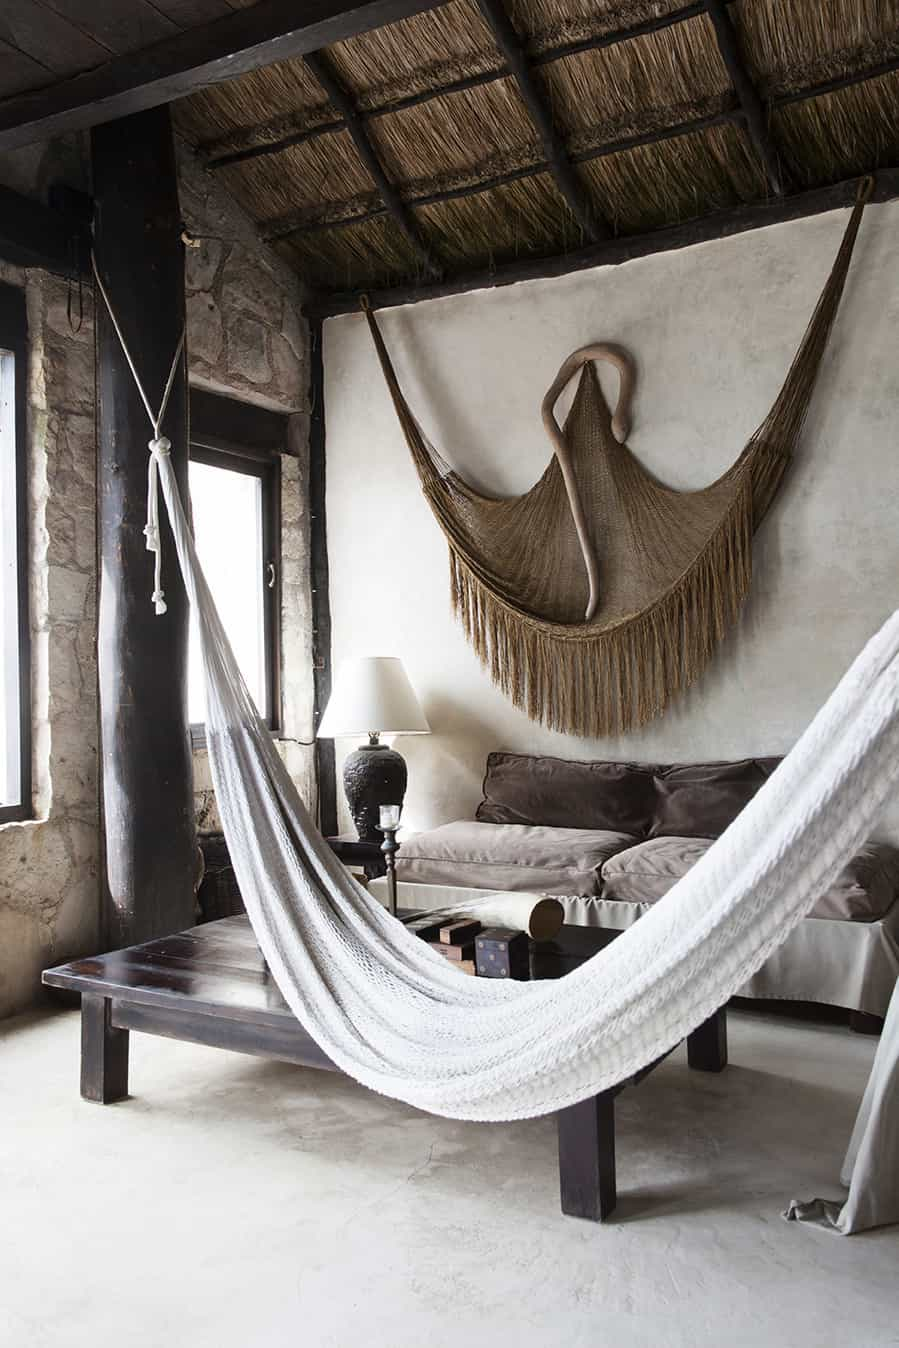 ... Gallery Knitted Hammock